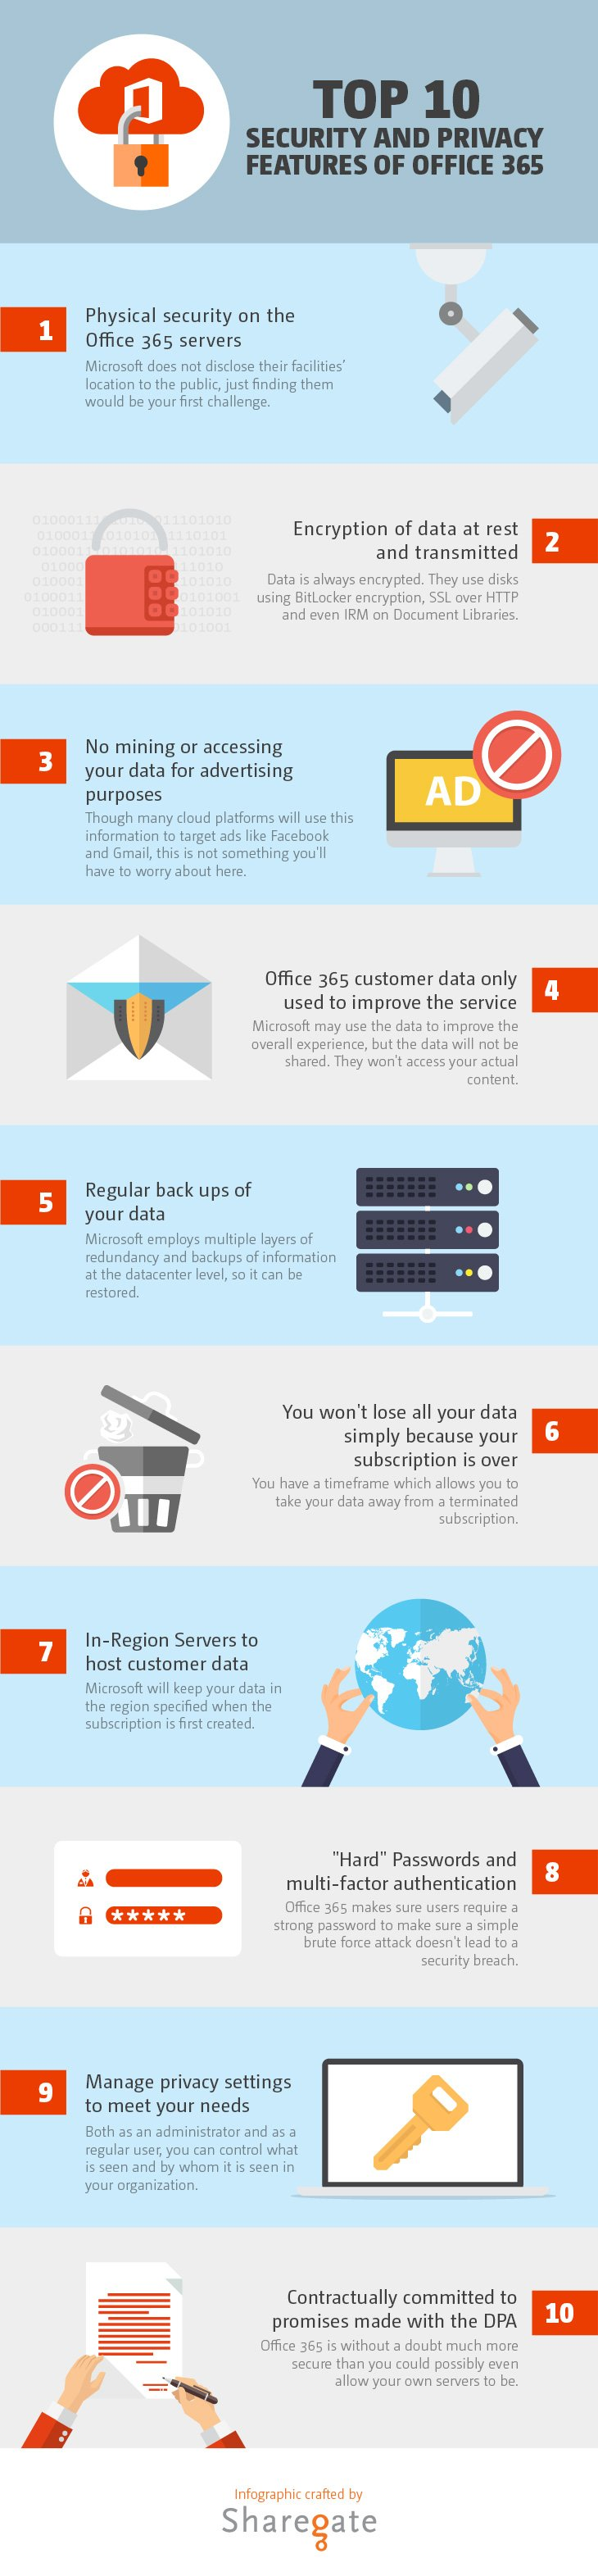 Office 365 security and privacy features infographic